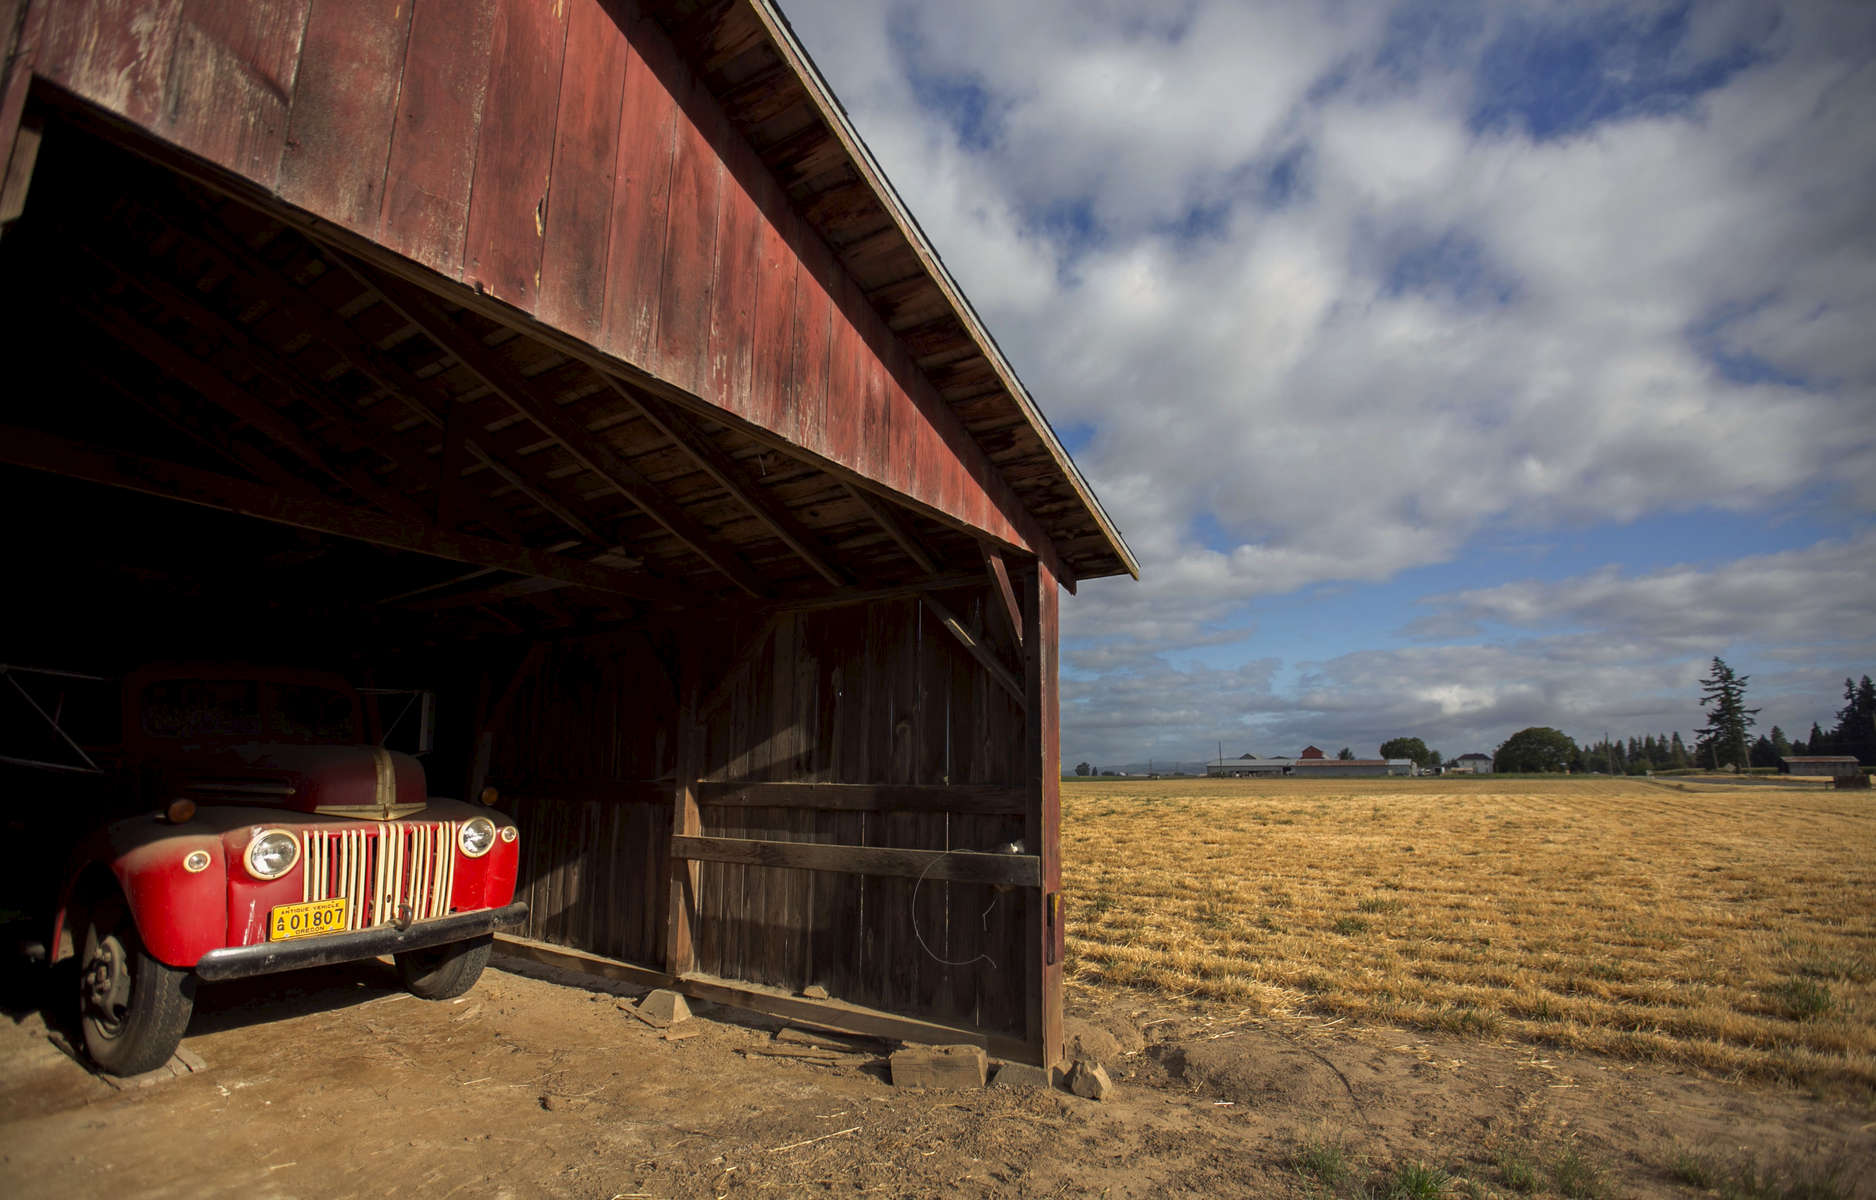 The Taghon farm in Cornelius was founded in 1915 by Theophile Cappoen, and is now owned by Theophile's great-great-grandson Joe Finegan and his wife Jennifer. The farm recently qualified as a Century Farm and the Finegans will accept the award at the end of August.Kristyna Wentz-Graff / Staff